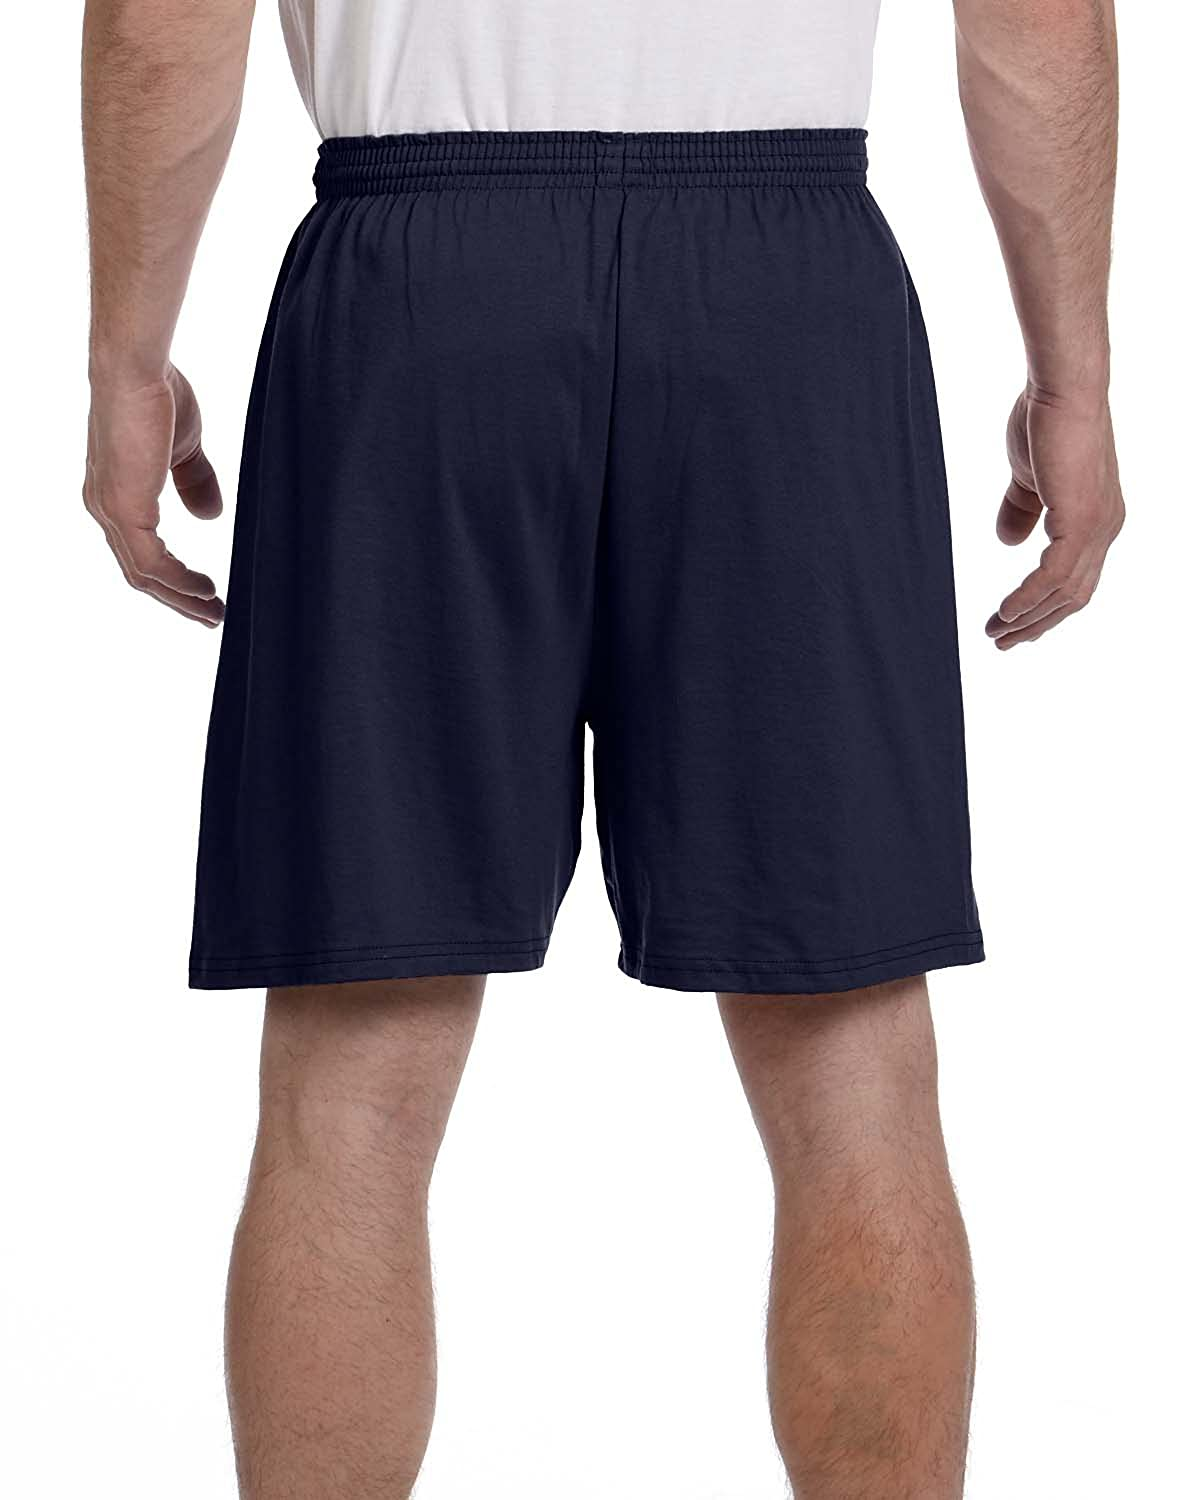 Cotton Jersey Shorts 6.1 oz. Cotton Jersey at Amazon Men's Clothing store:  Athletic Shorts